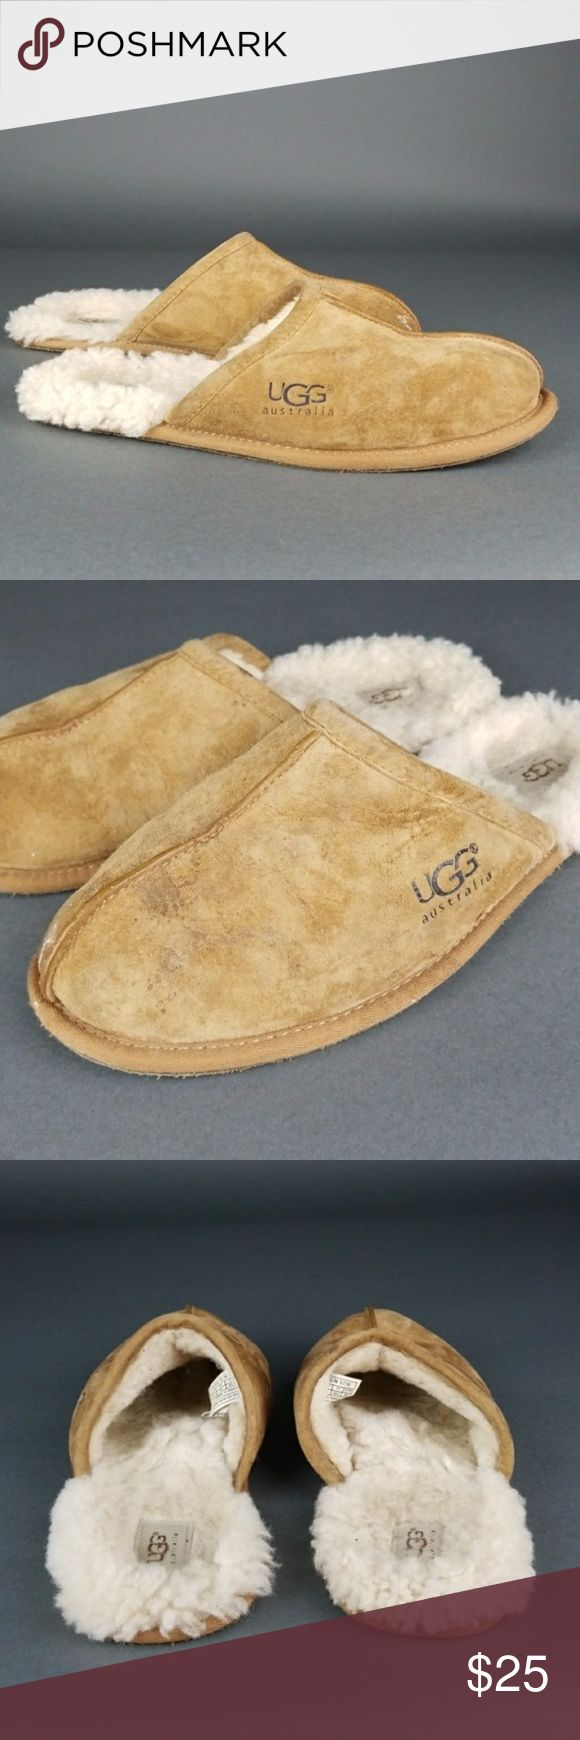 Uggs mens slip ons In good condition has wear and some water marks and some paint marks as well. Still great slippers for outdoor and indoor. UGG Shoes